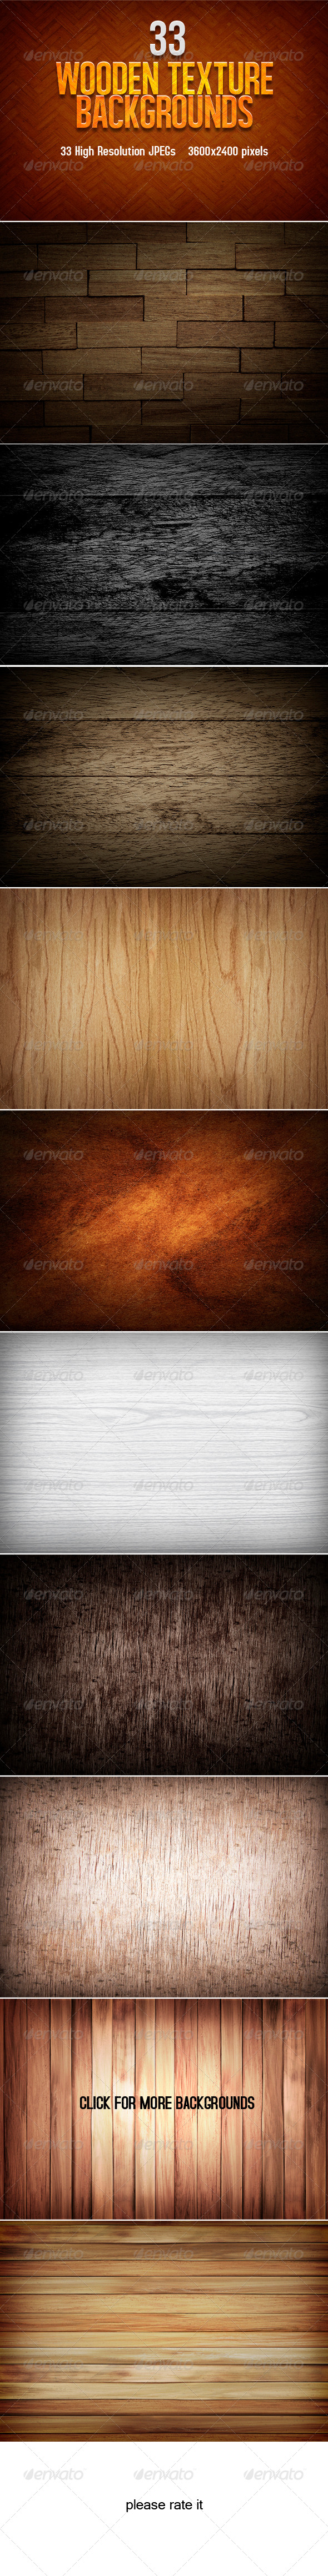 Wooden Texture Backgrounds - Miscellaneous Backgrounds